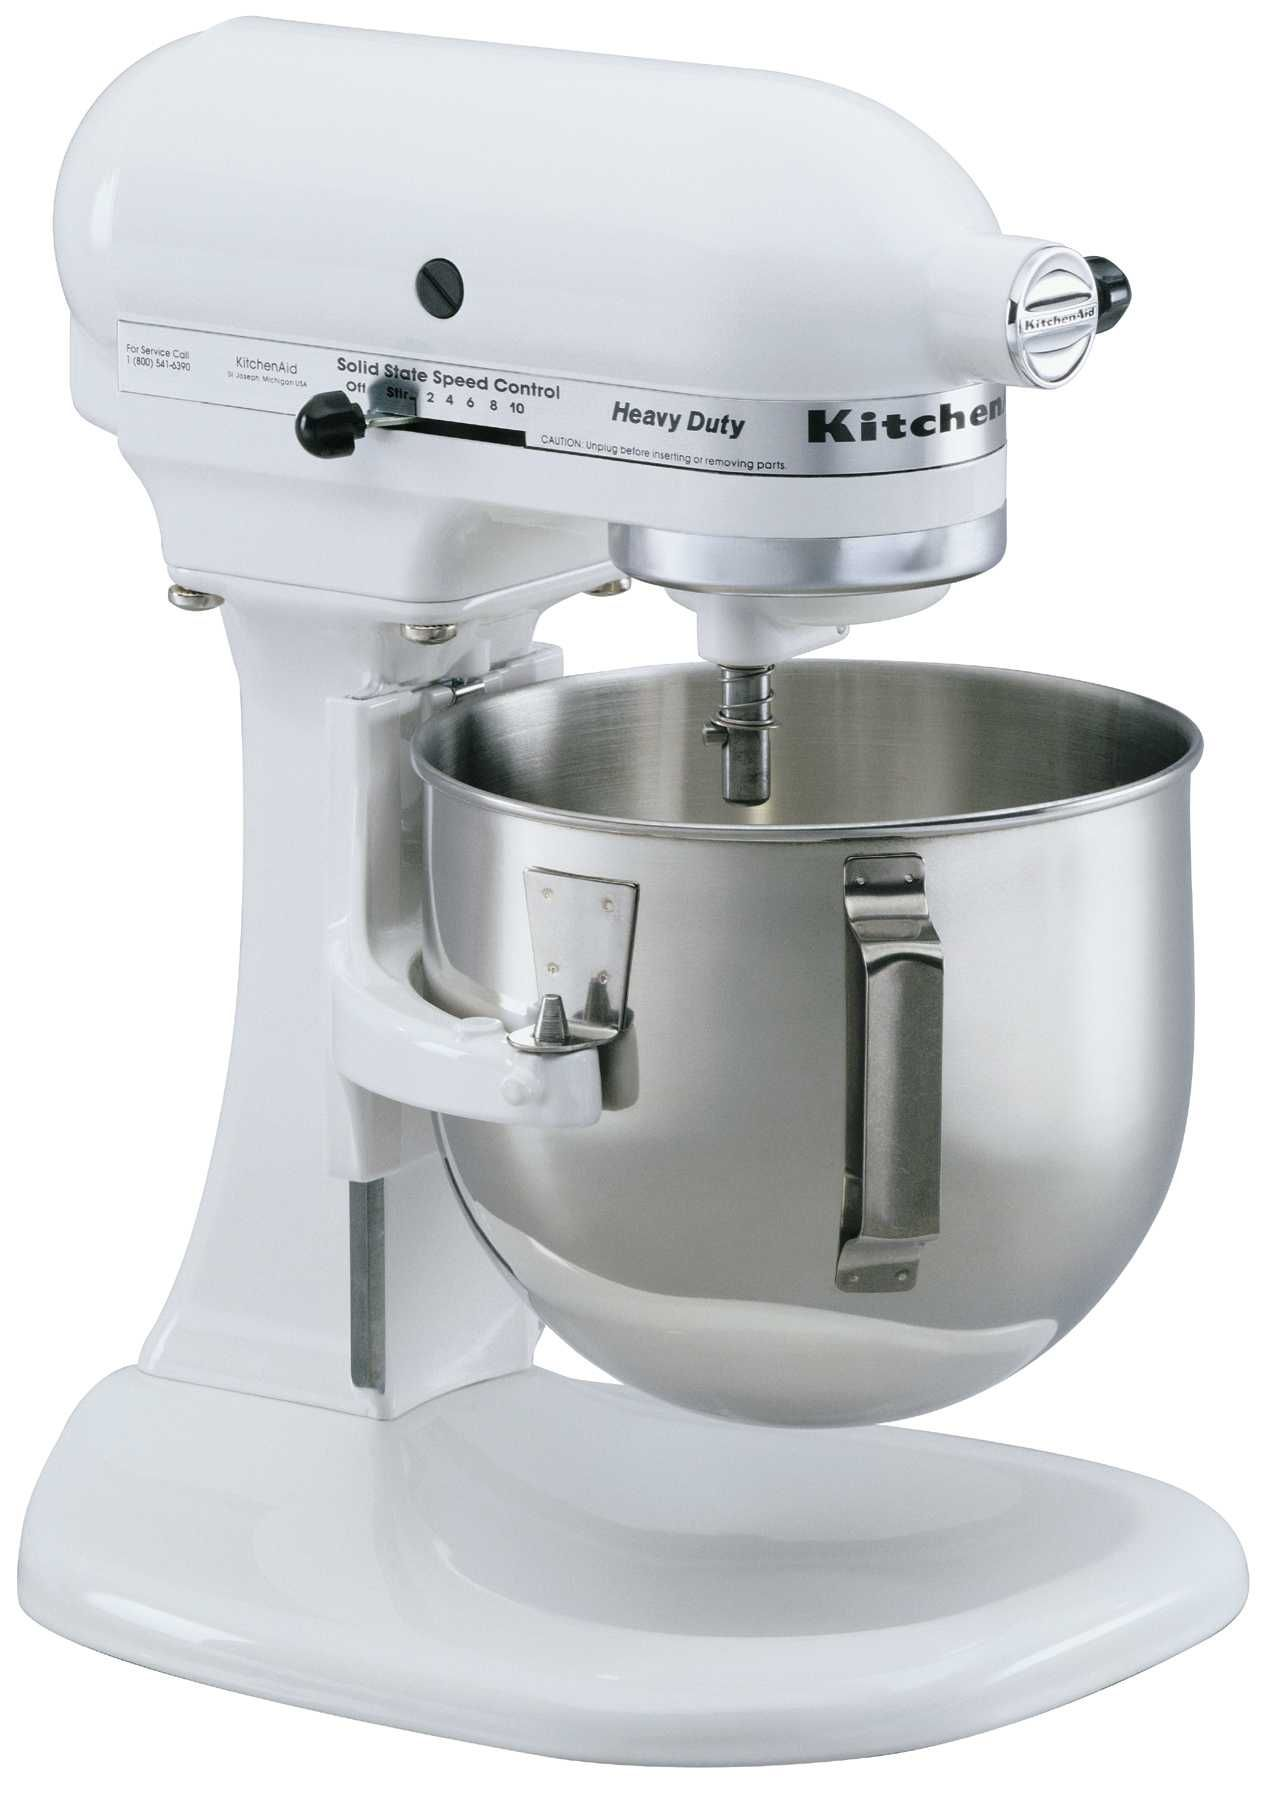 KitchenAid K5SSWH Heavy Duty Series 5Quart Stand Mixer